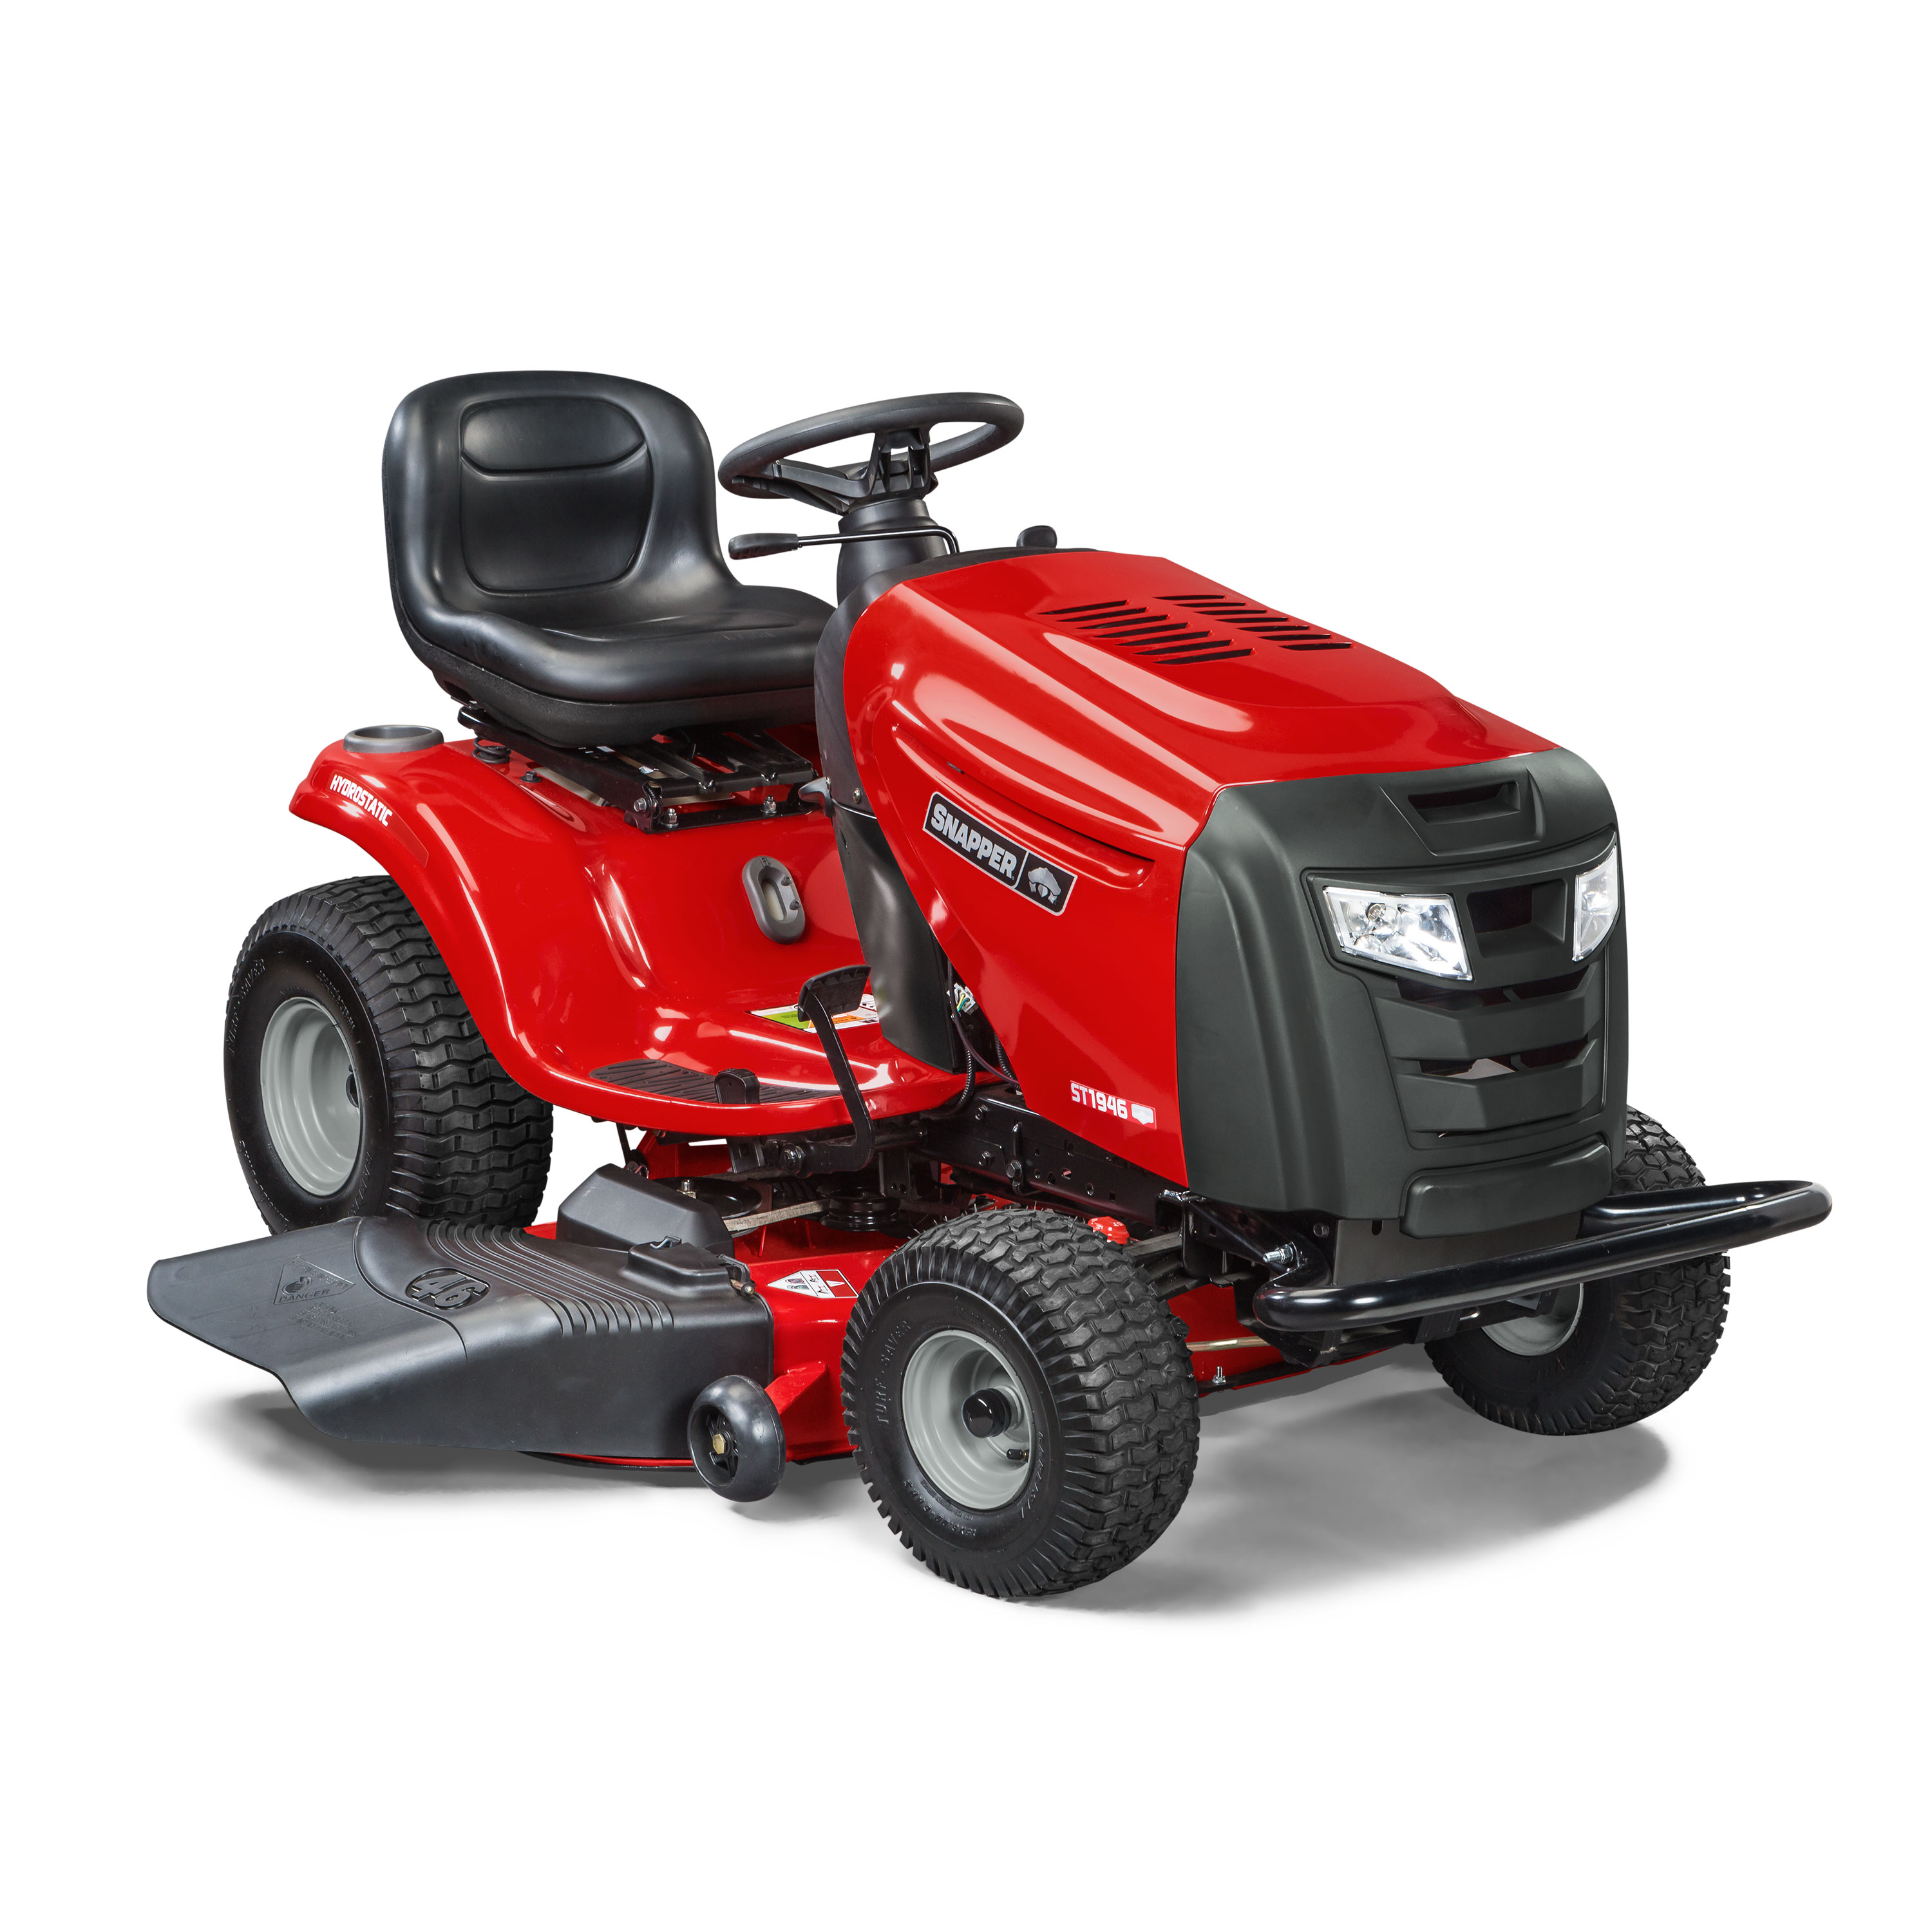 Snapper 46 in. 19 HP Briggs & Stratton Riding Lawn Tractor, ST1946